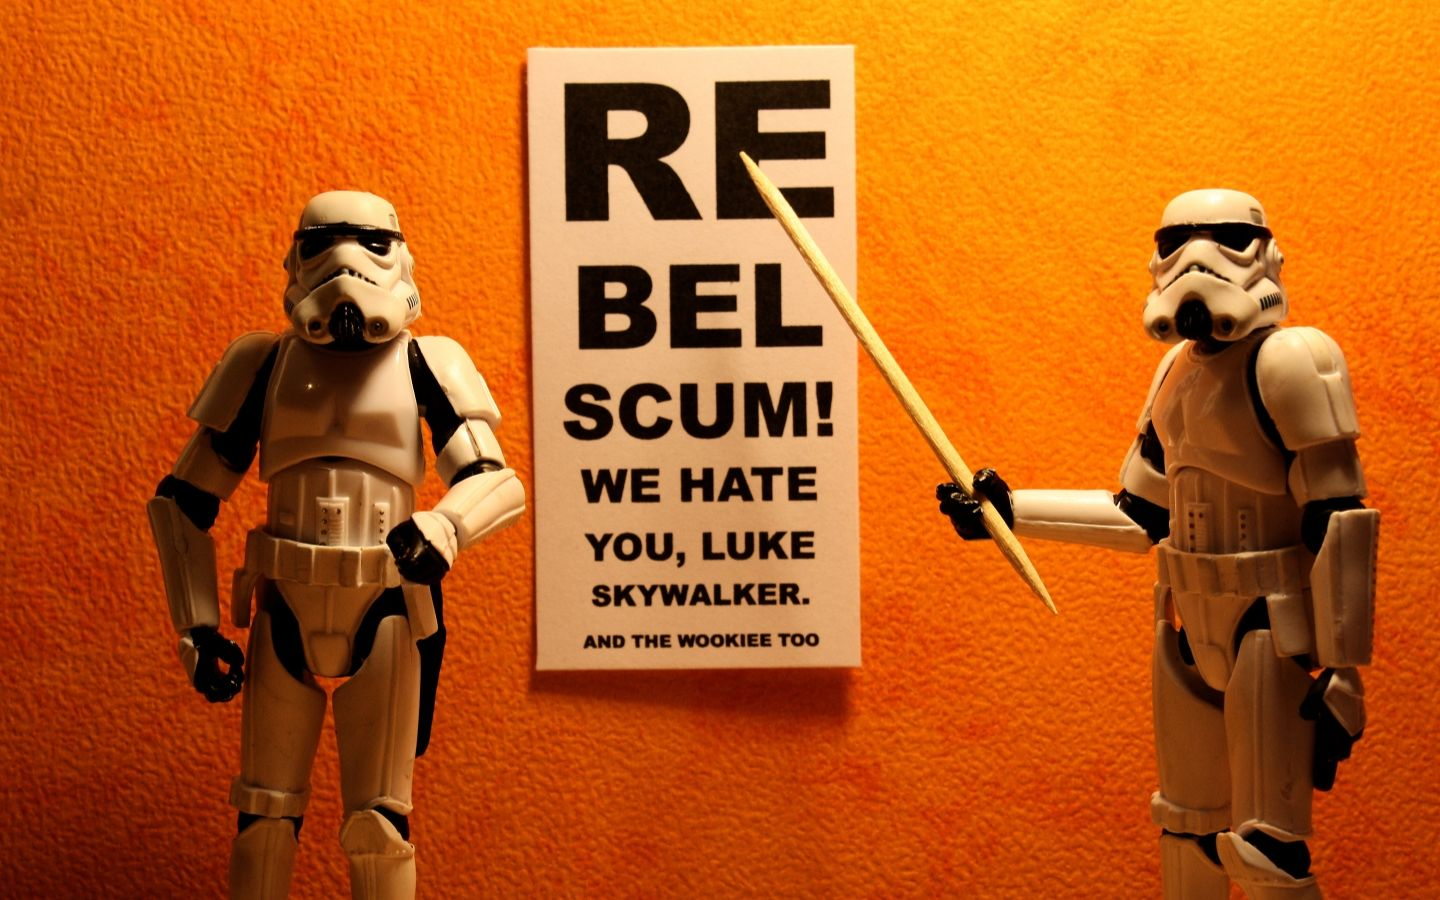 star wars images funny - photo #32